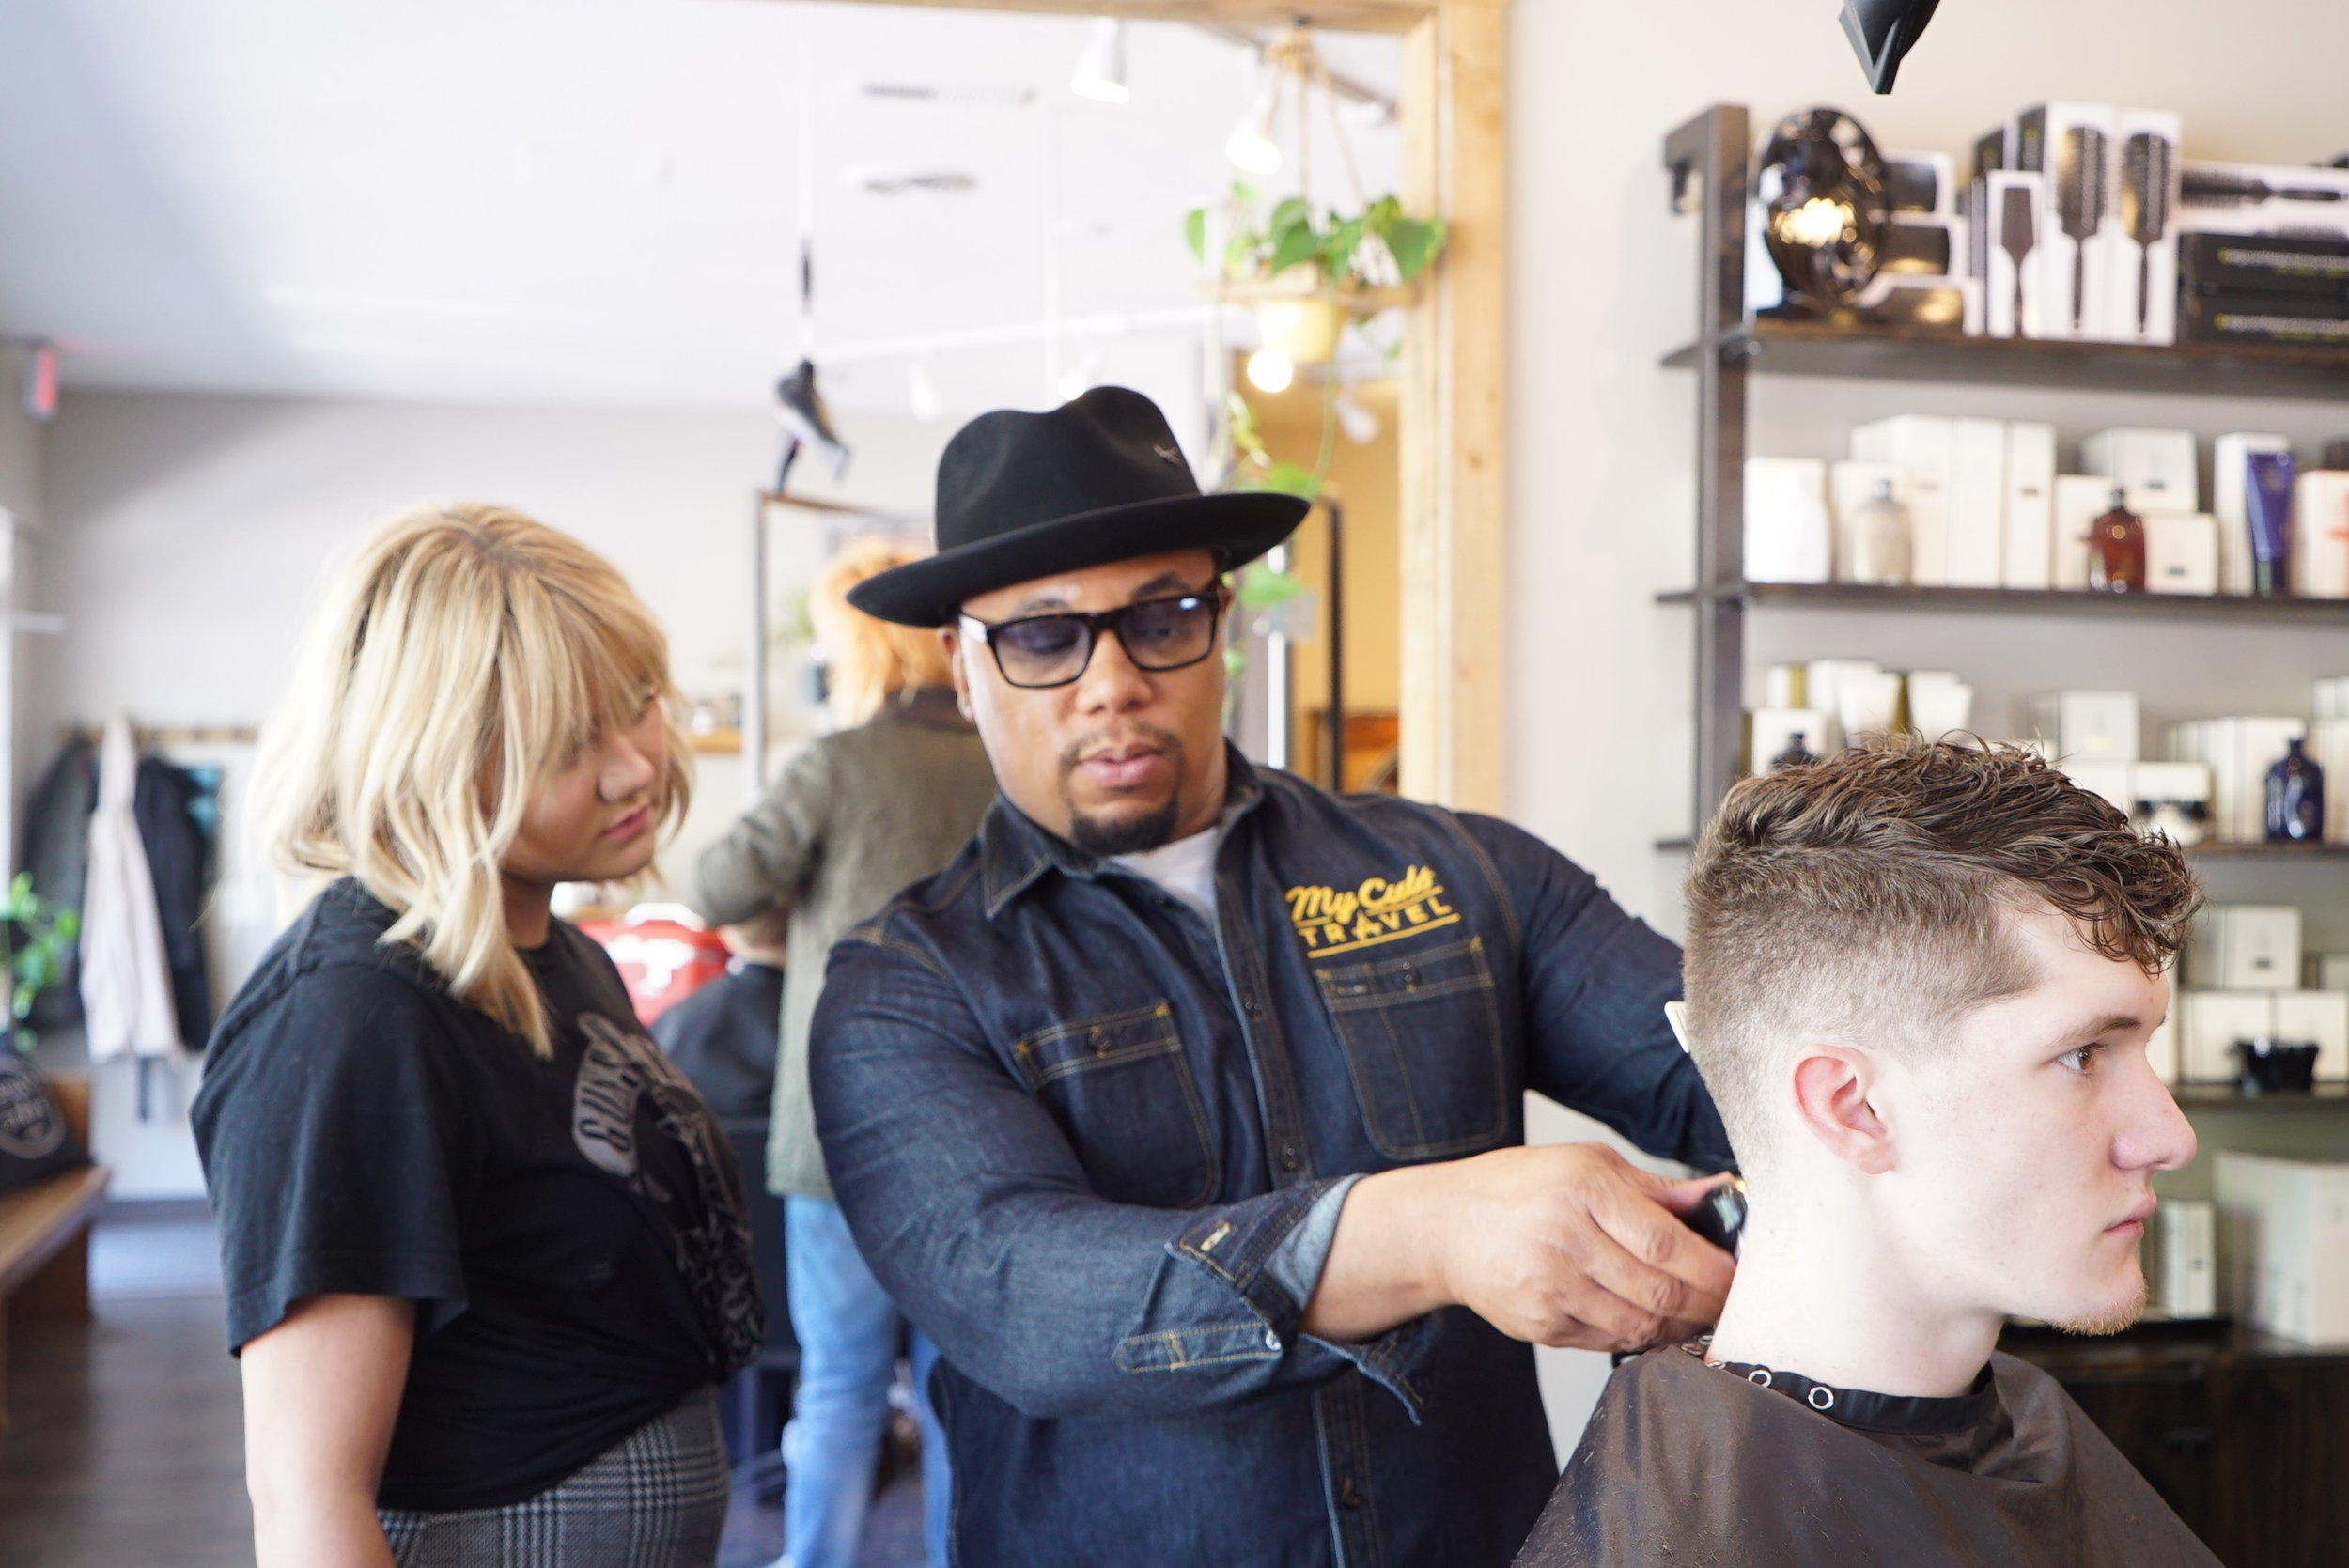 """Tahki teaching salon professionals at Paisley and Stripe in Lawrence  """"Tahki broke down barbering in a way that was empowering and easy to understand. My staff thanked me several times for bringing him in. I would highly reccomend him to all salon professionals wanting to go to the next level with thier male clientele.""""  -Penny Stuckel, Owner of Paisley and Stripe   TAHKI""""S INSTAGRAM    MY CUTS TRAVEL"""